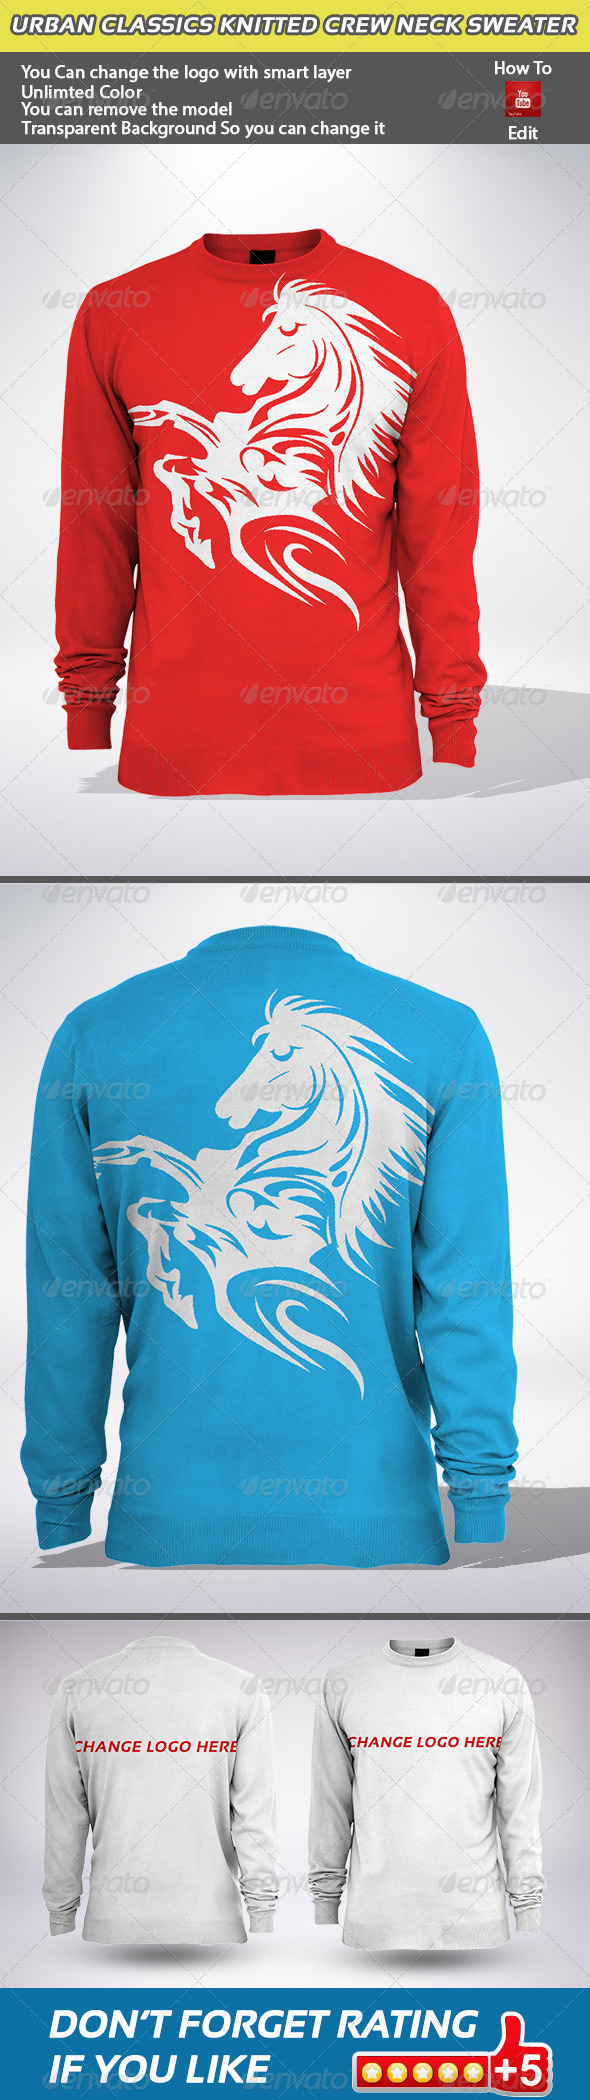 GraphicRiver Urban Classics Knitted Crew Neck Sweater 5938456